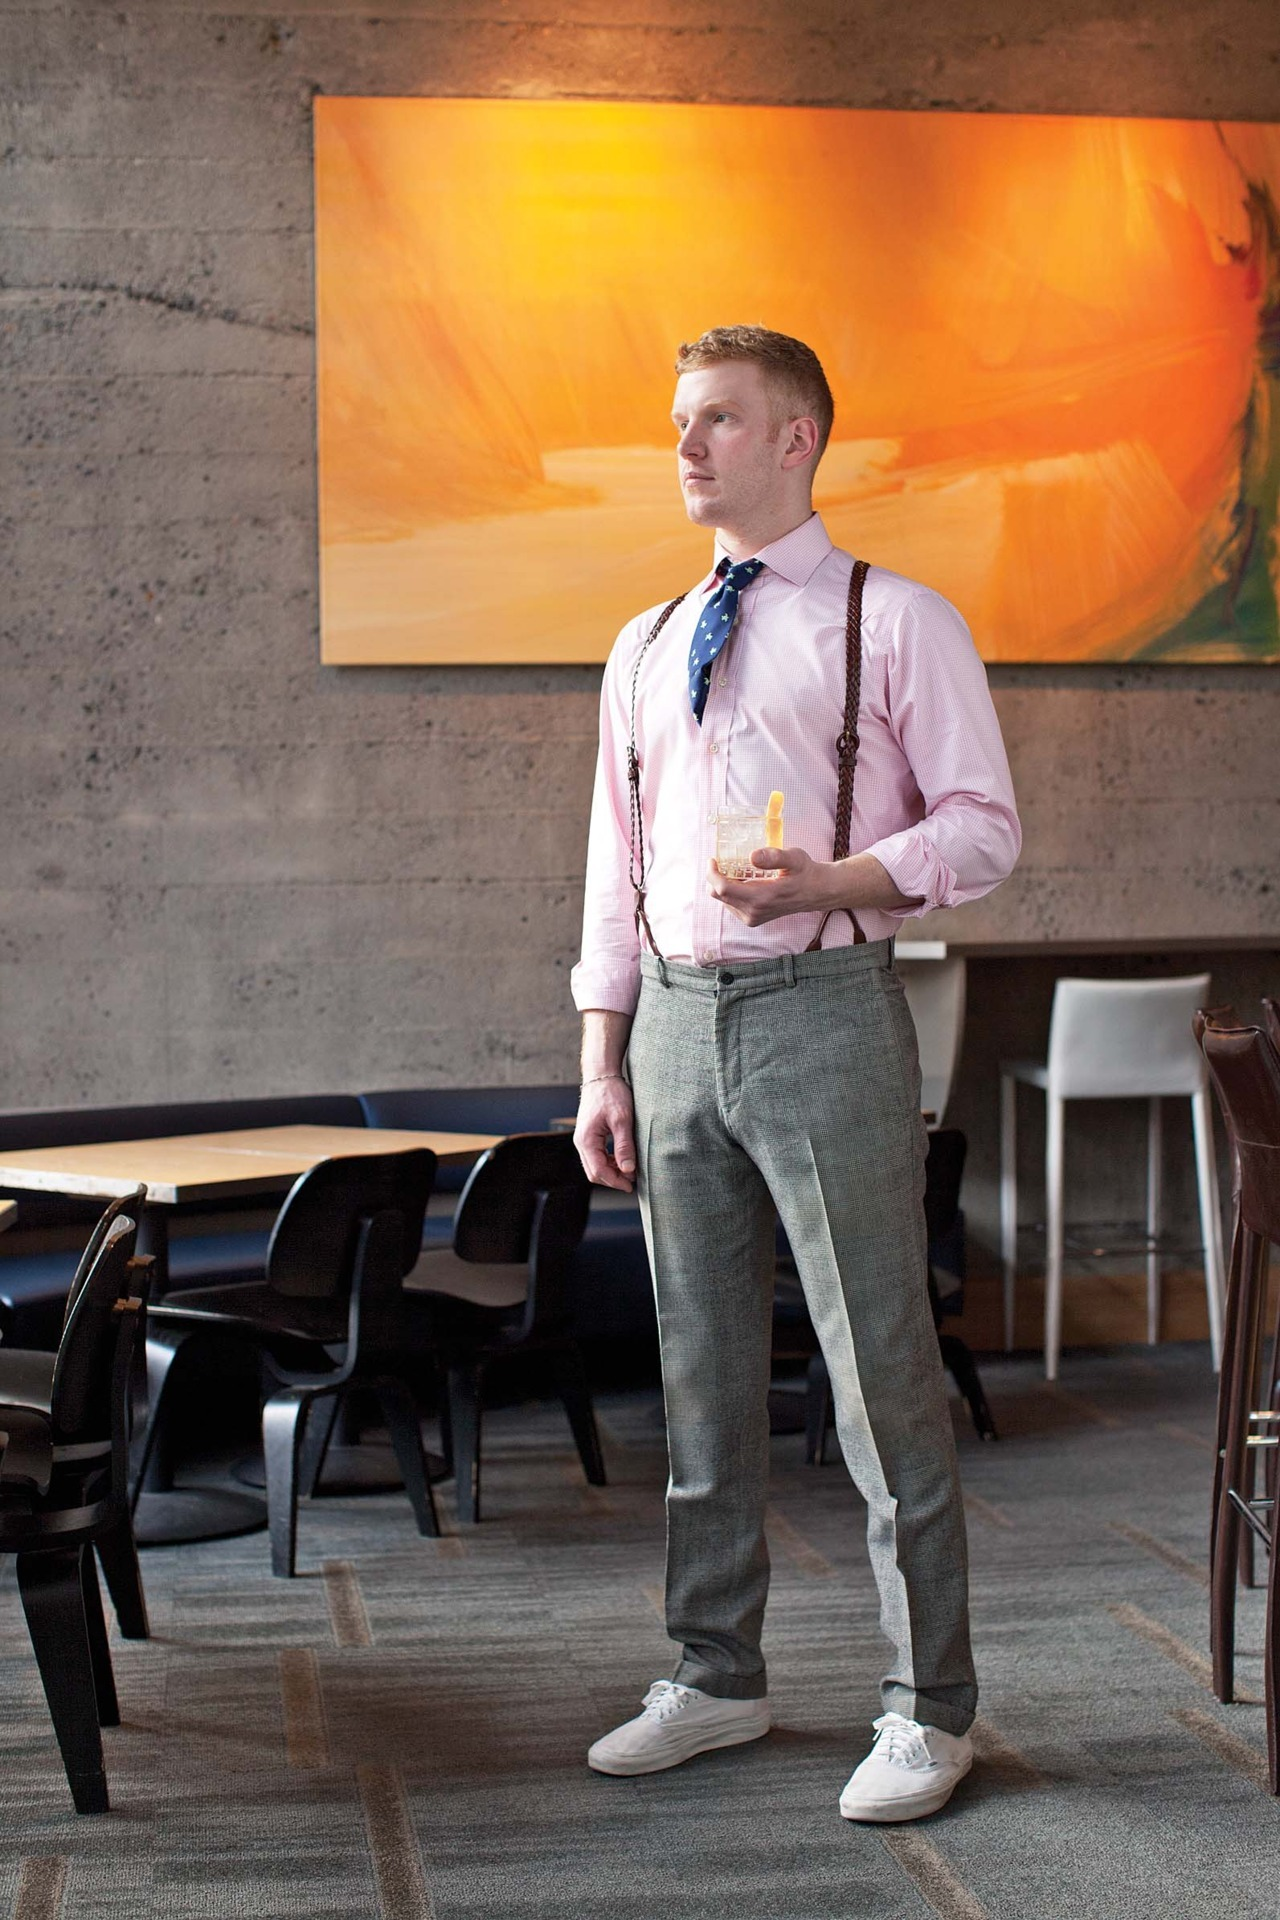 Following bartender Sean Hoard's lead, enRoute toasts Portland's spirited cocktail scene. Selon le barman Sean Hoard, avec ses cocktails aussi bons qu'uniques, la ville de Portland a raison de se péter les bretelles. Photo by / de Corey Arnold. See more from our March 2012 issue.Découvrez le reste de notre numéro de mars 2012.